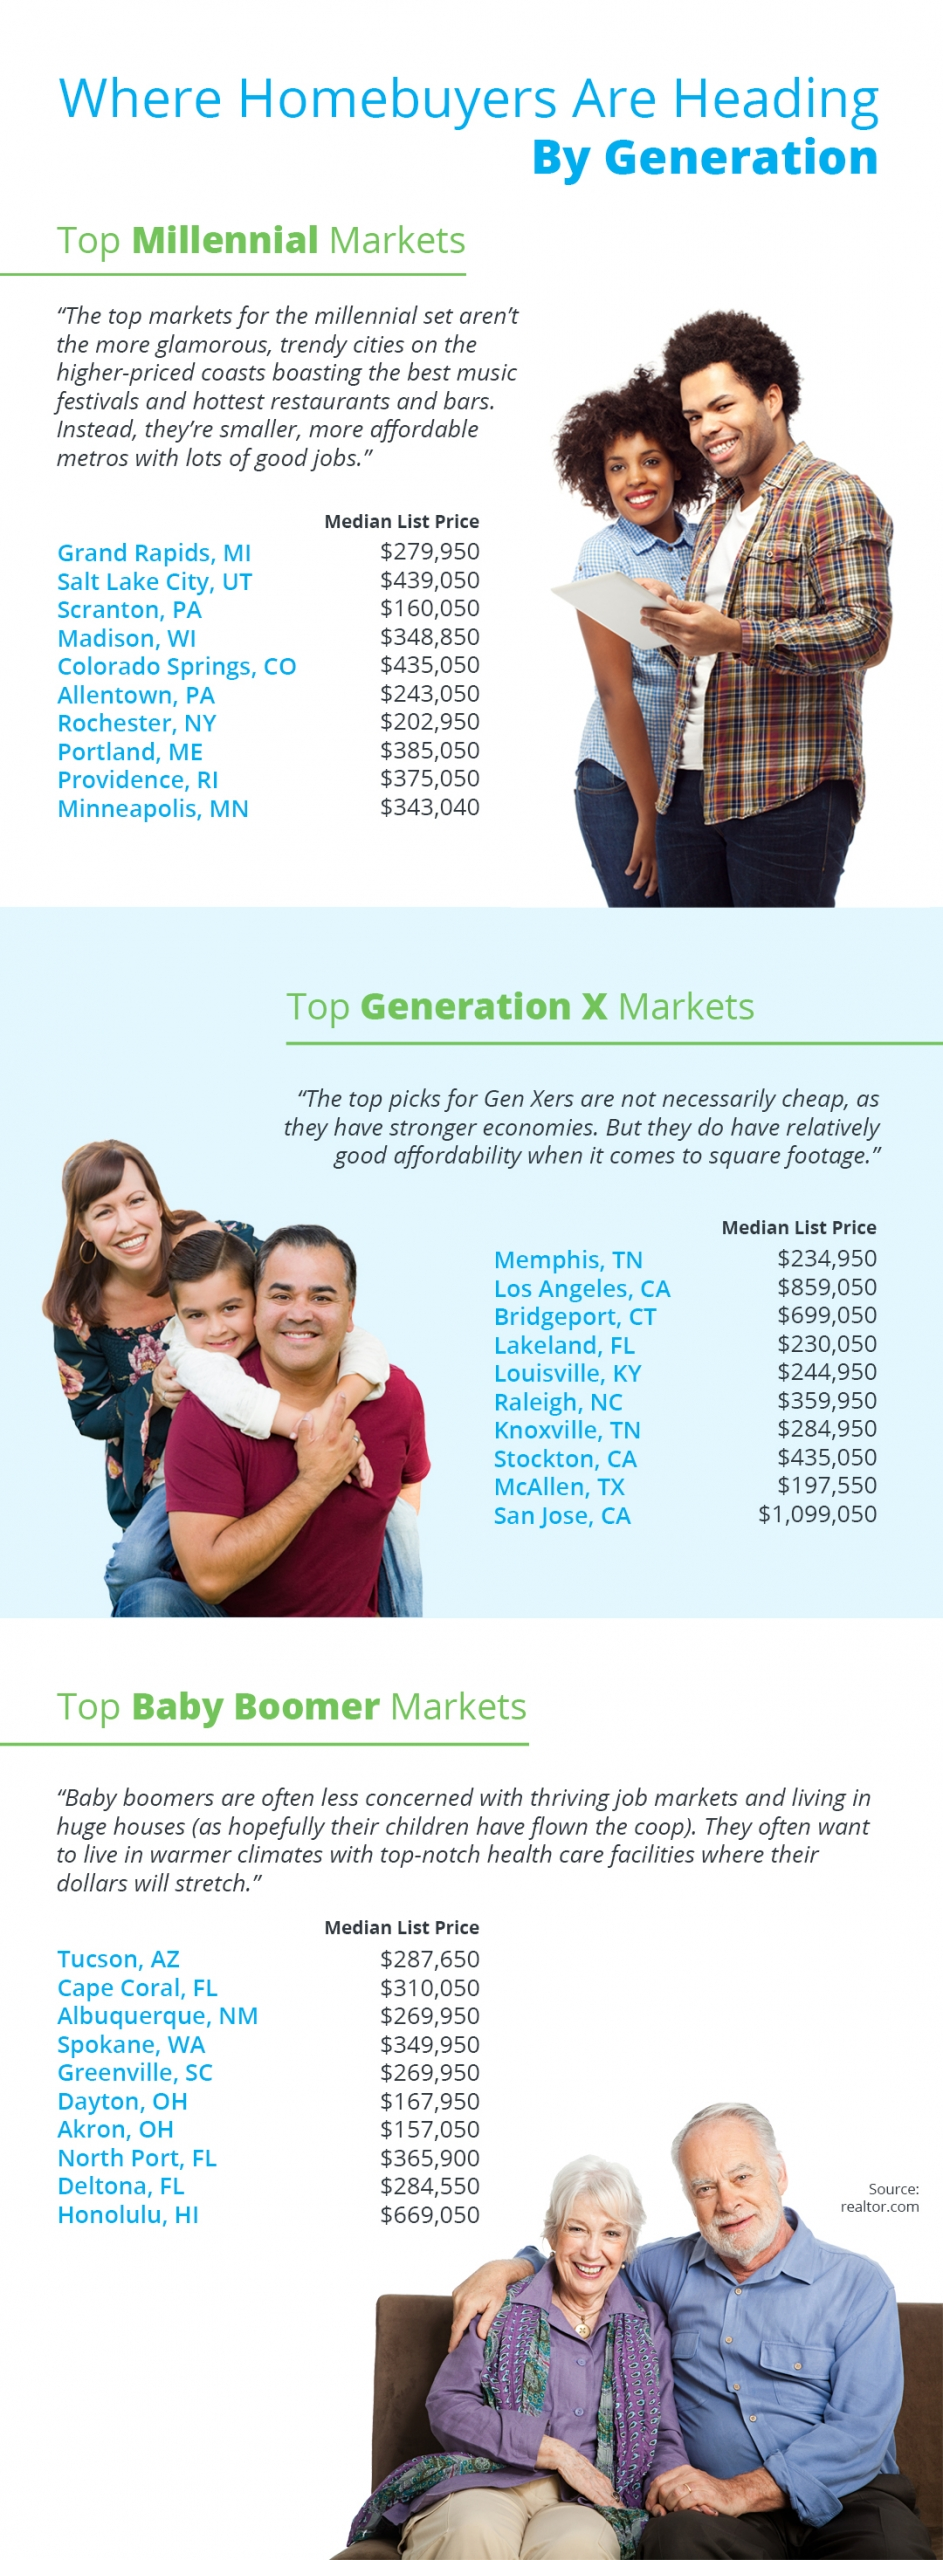 Where Homebuyers Are Heading By Generation [INFOGRAPHIC] | Simplifying {THE MARKETPLACE}